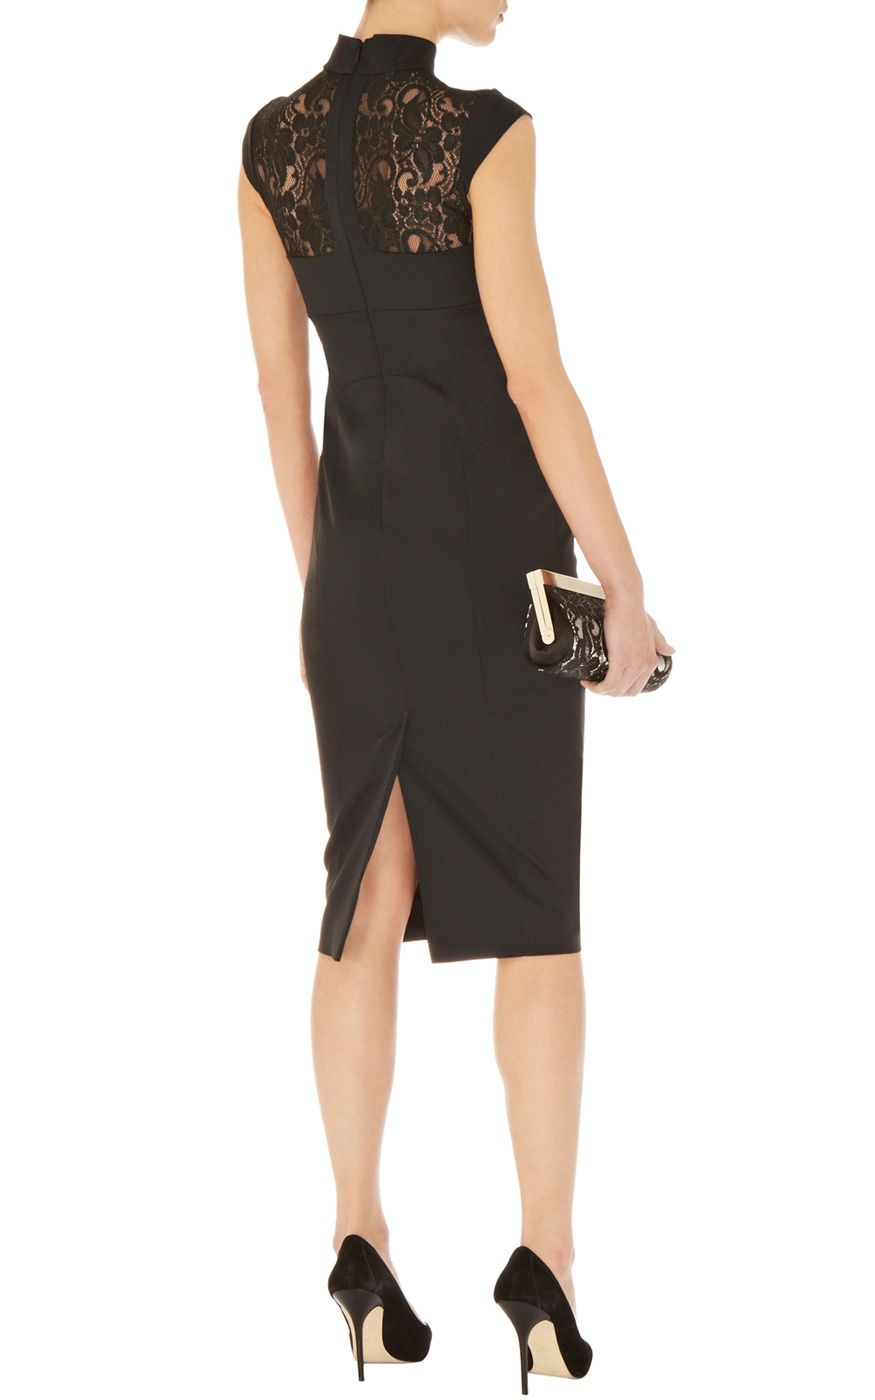 Karen Millen Lace Sleeve Black Dress